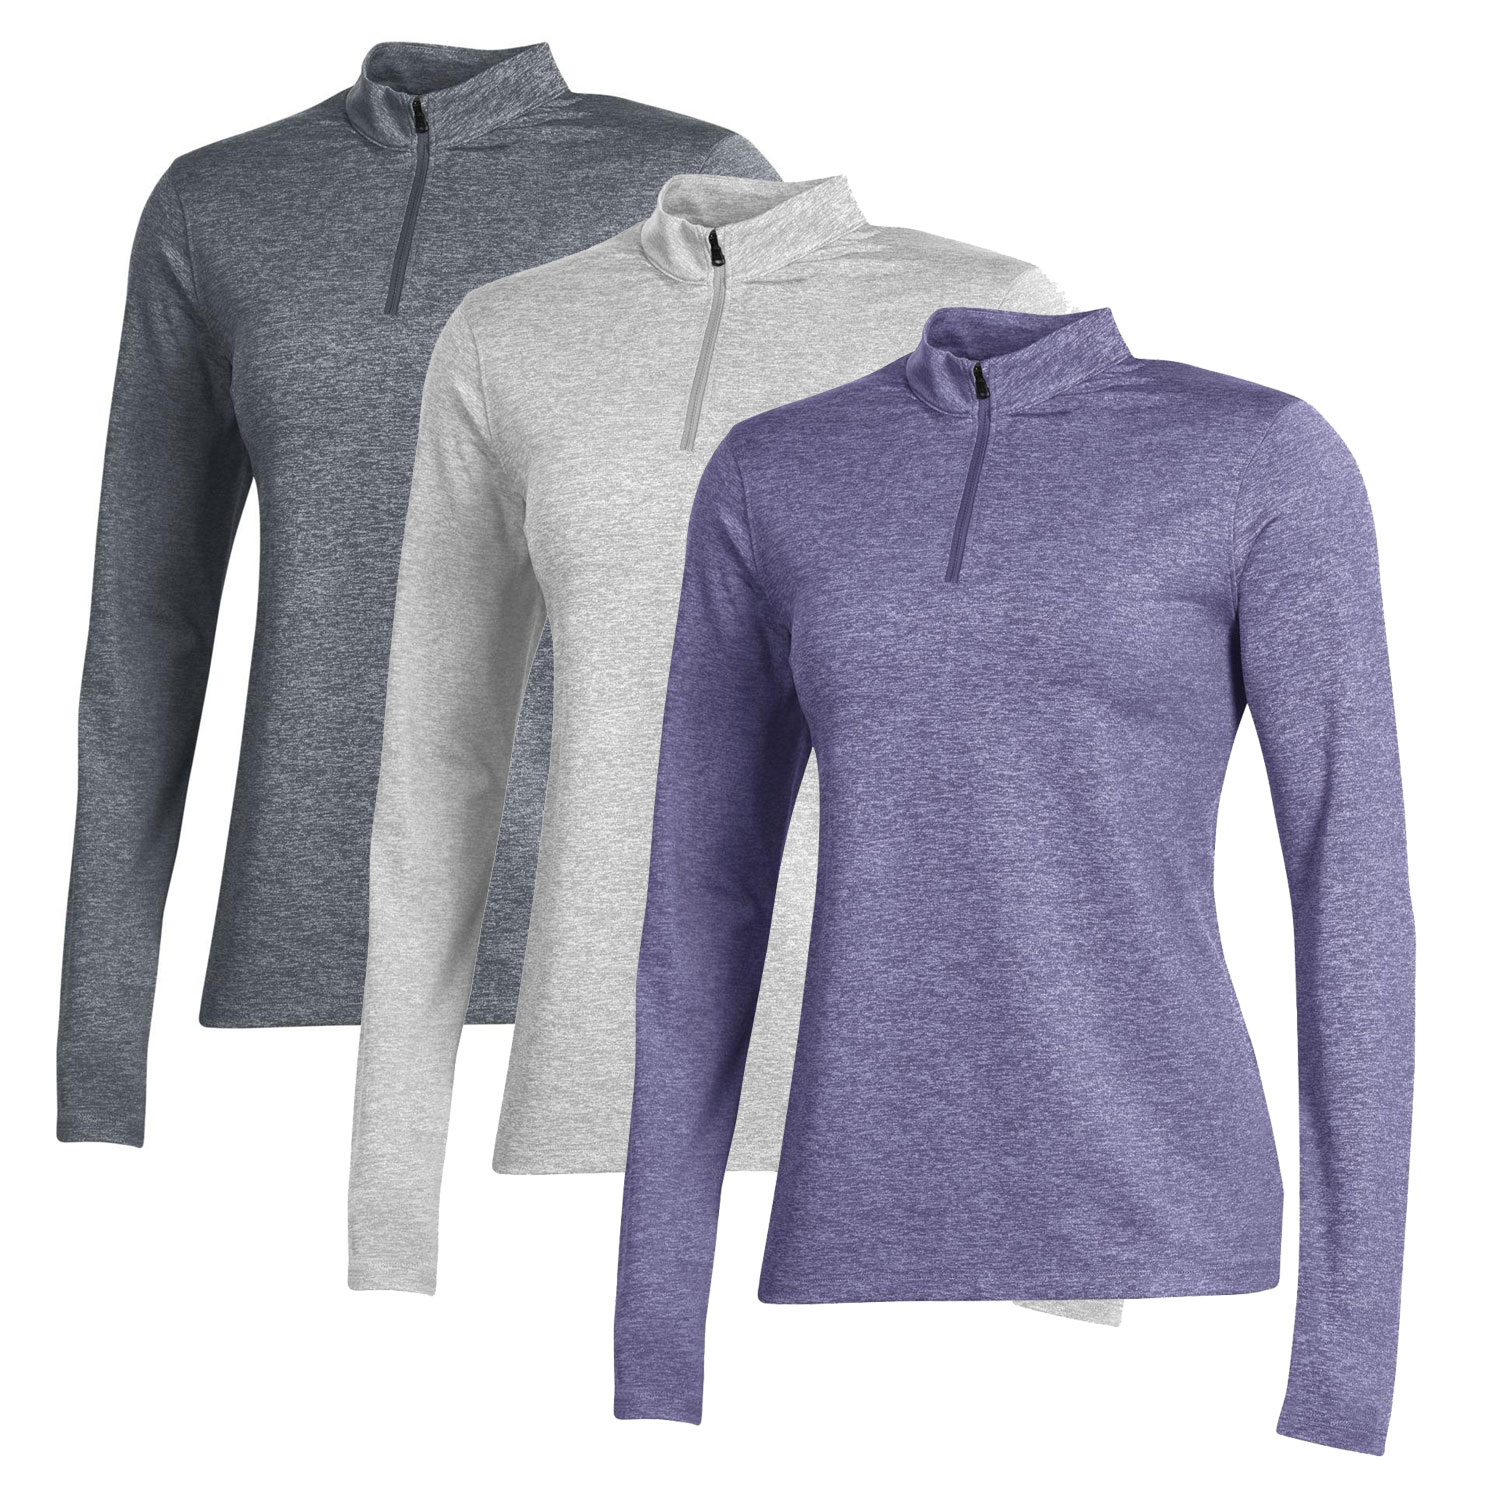 Under Armour Women's Zinger 2.0 1/4 Zip Pullover